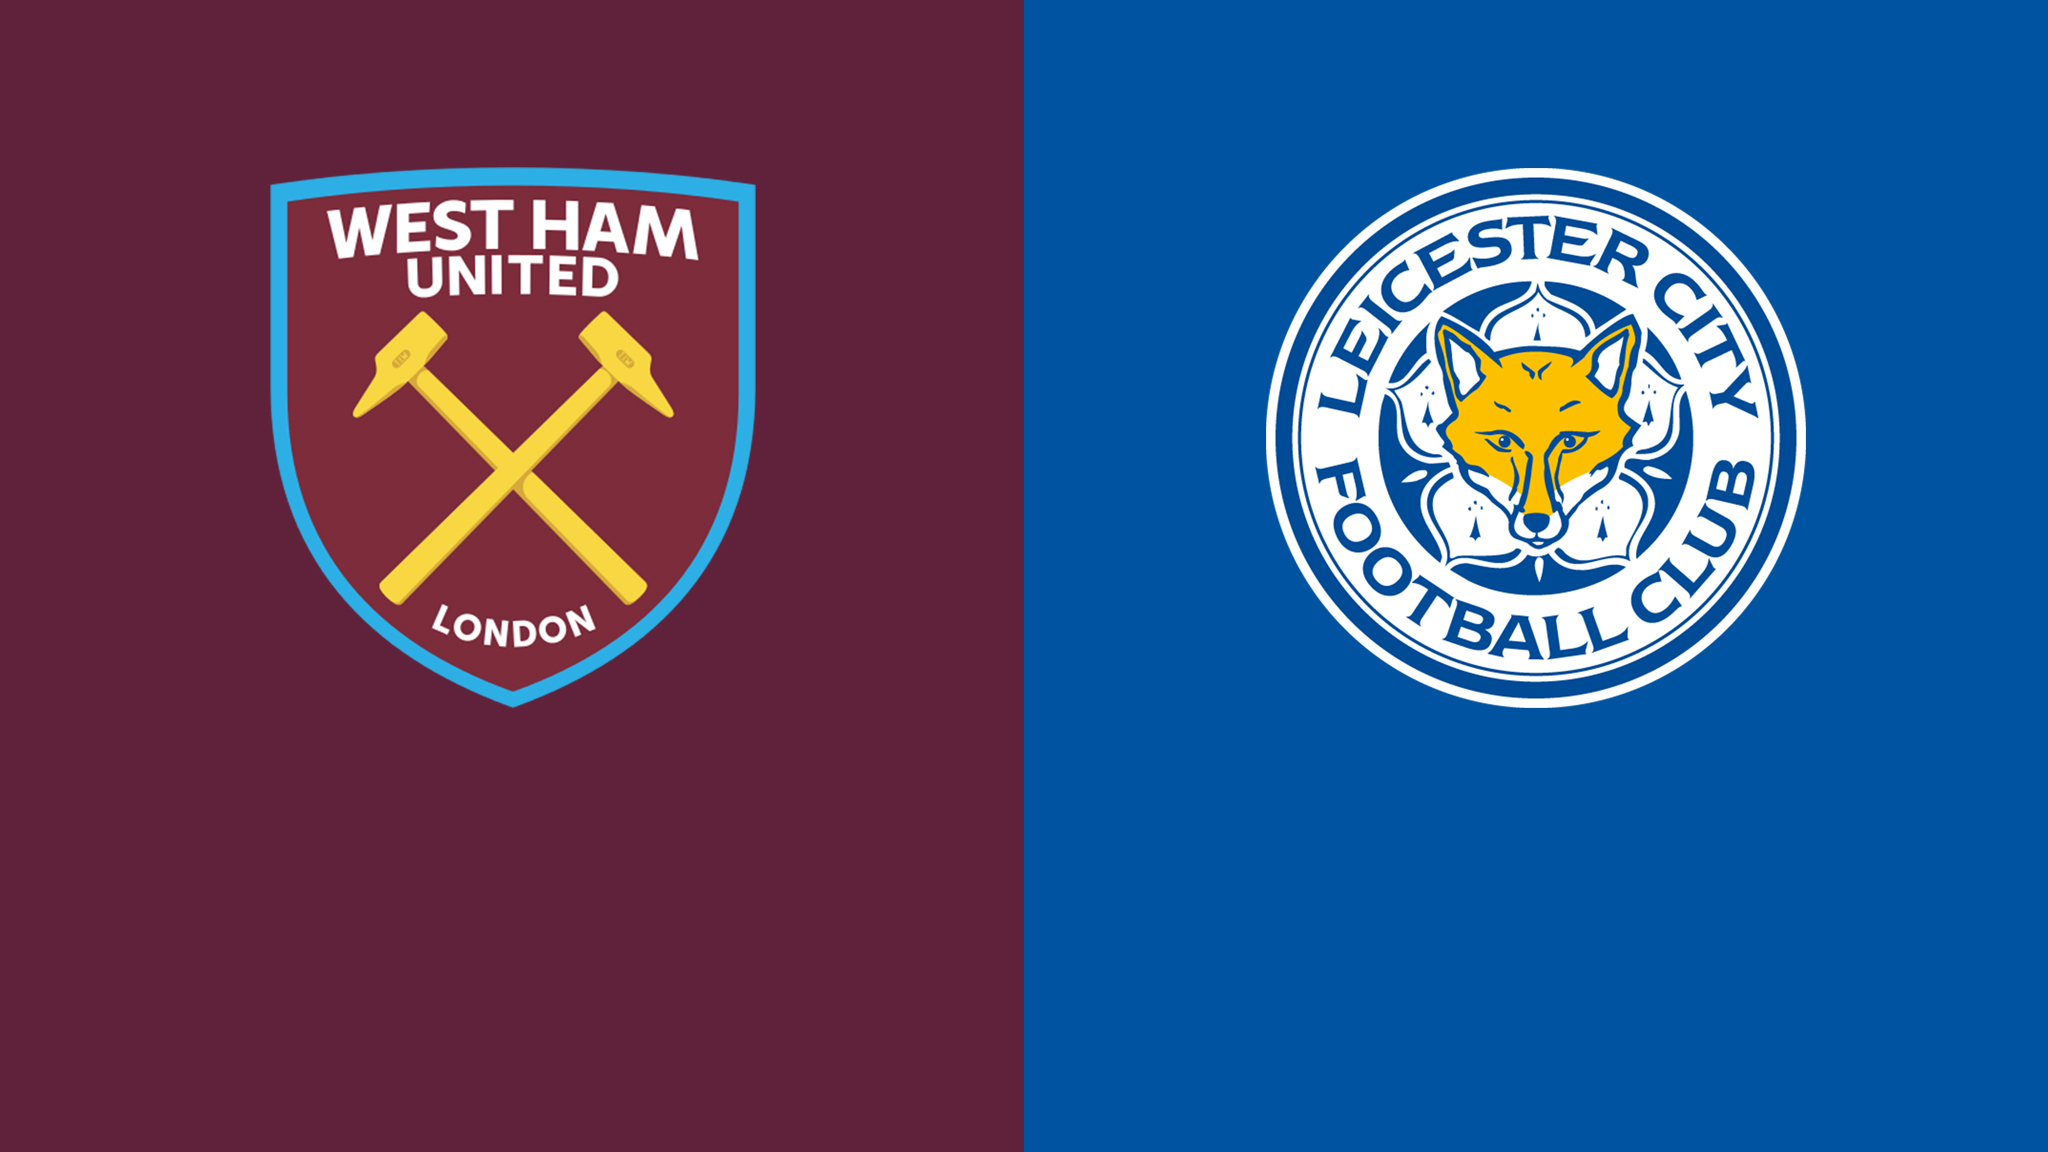 West Ham United vs Leicester City footem